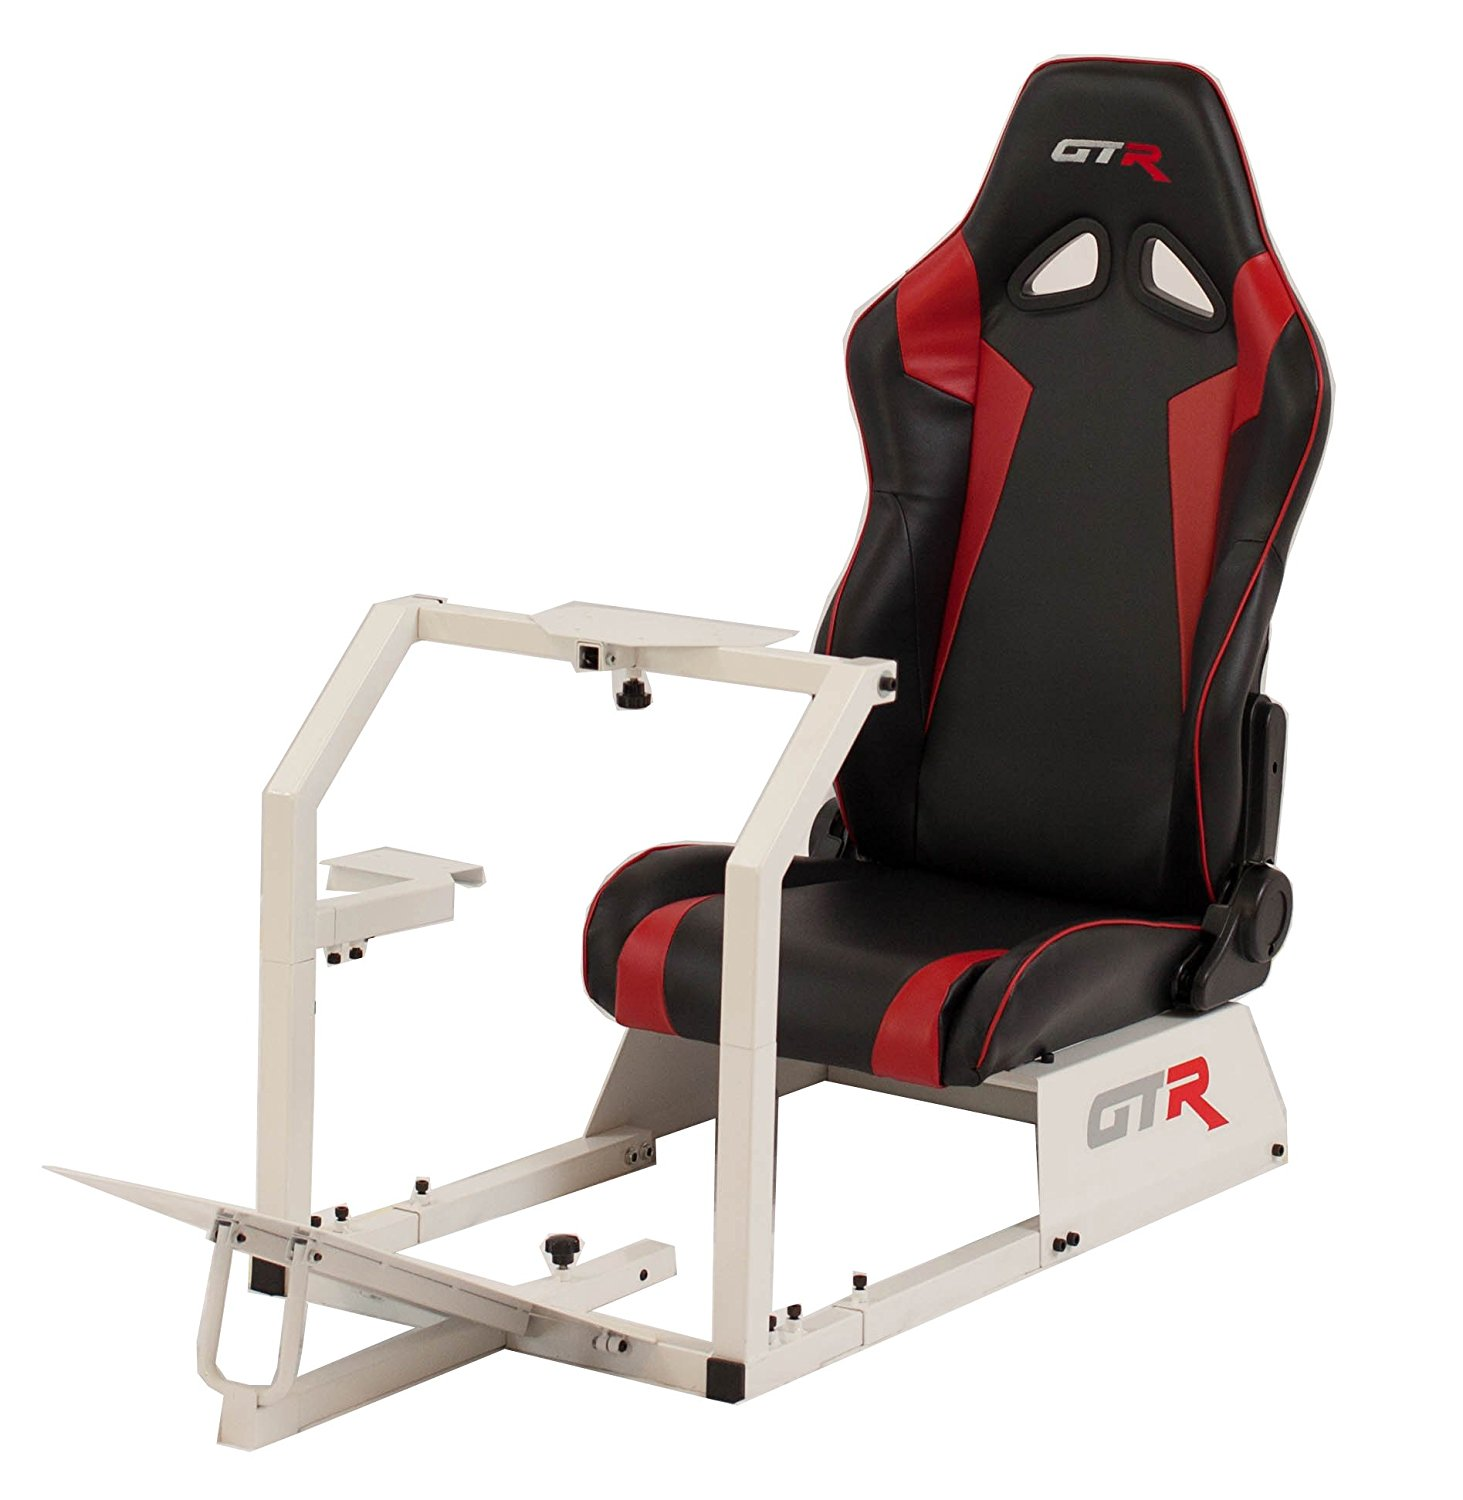 GTR Racing Simulator GTA-WHT-S105LBLKRD GTA 2017 Model White Frame with Black/Red Real Racing Seat, Driving Simulator Cockpit Gaming Chair with Gear Shifter Mount